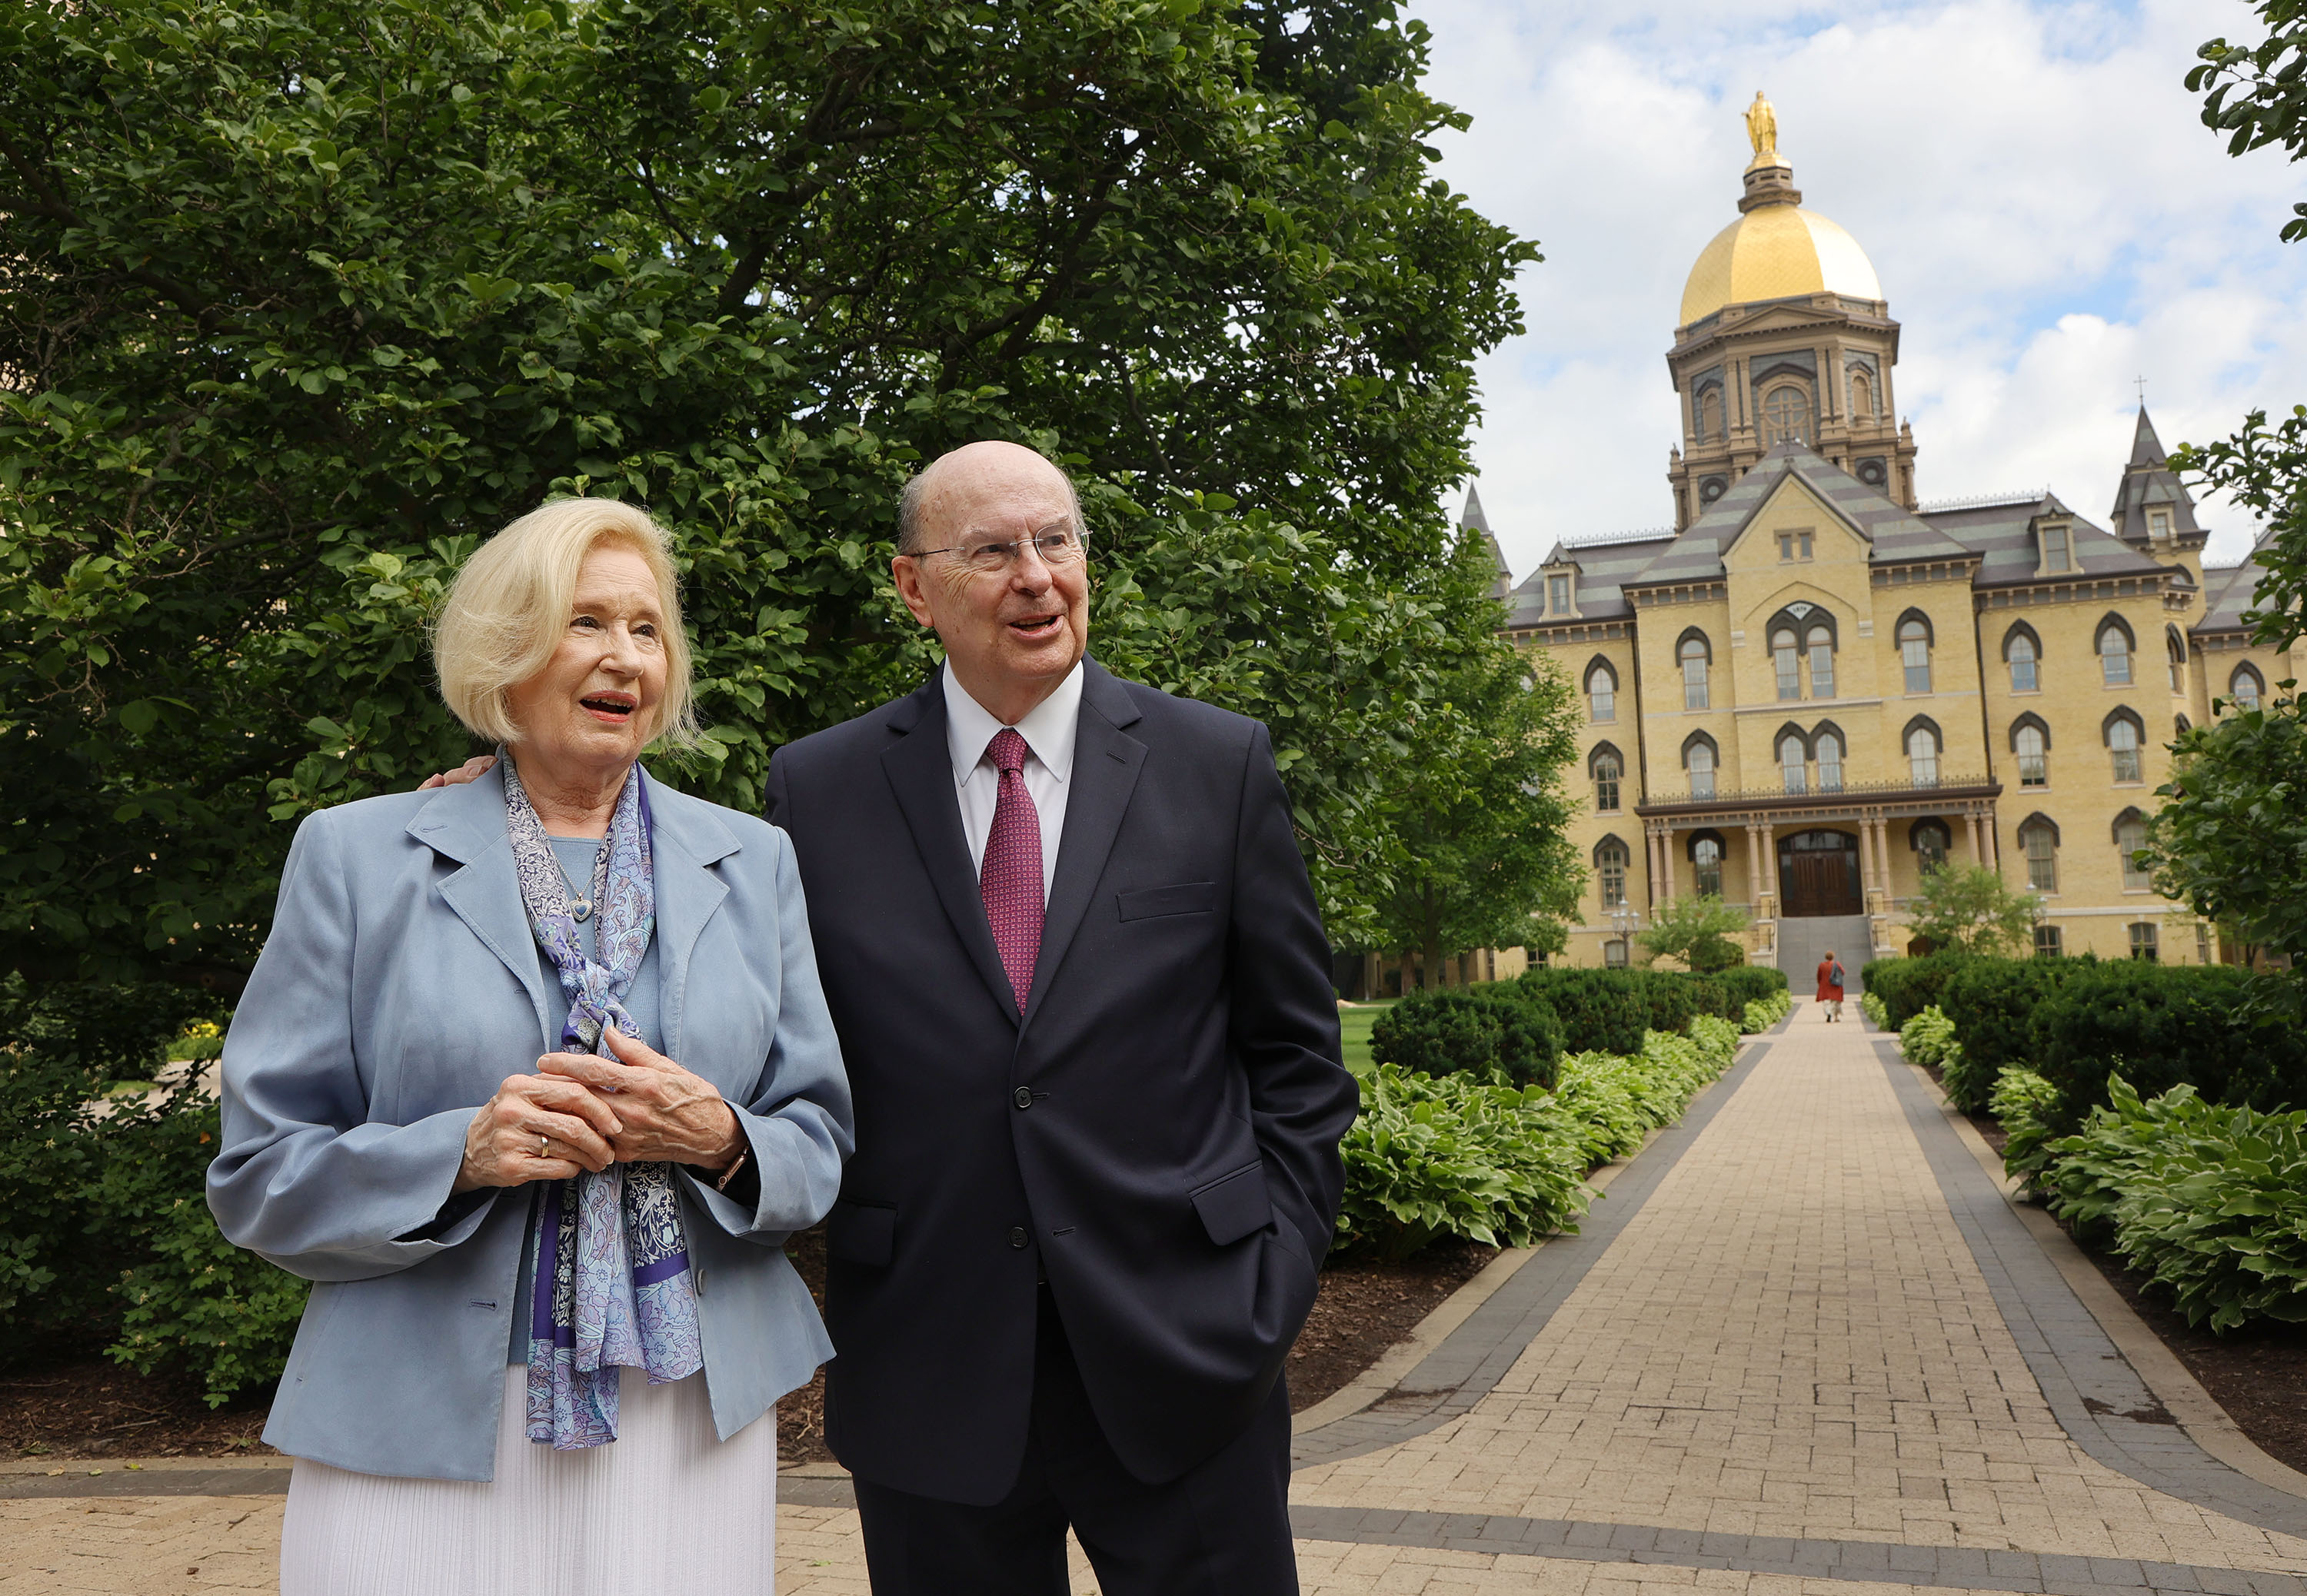 Sister Mary Cook and husband Elder Quentin L. Cook, a member of the Quorum of the Twelve Apostles of The Church of Jesus Christ of Latter-day Saints, walk near the Notre Dame Golden Dome during the Notre Dame Religious Liberty Summit at the University of Notre Dame in South Bend, Ind., on Monday, June 28, 2021. The annual gathering involves thought leaders of religious liberty.